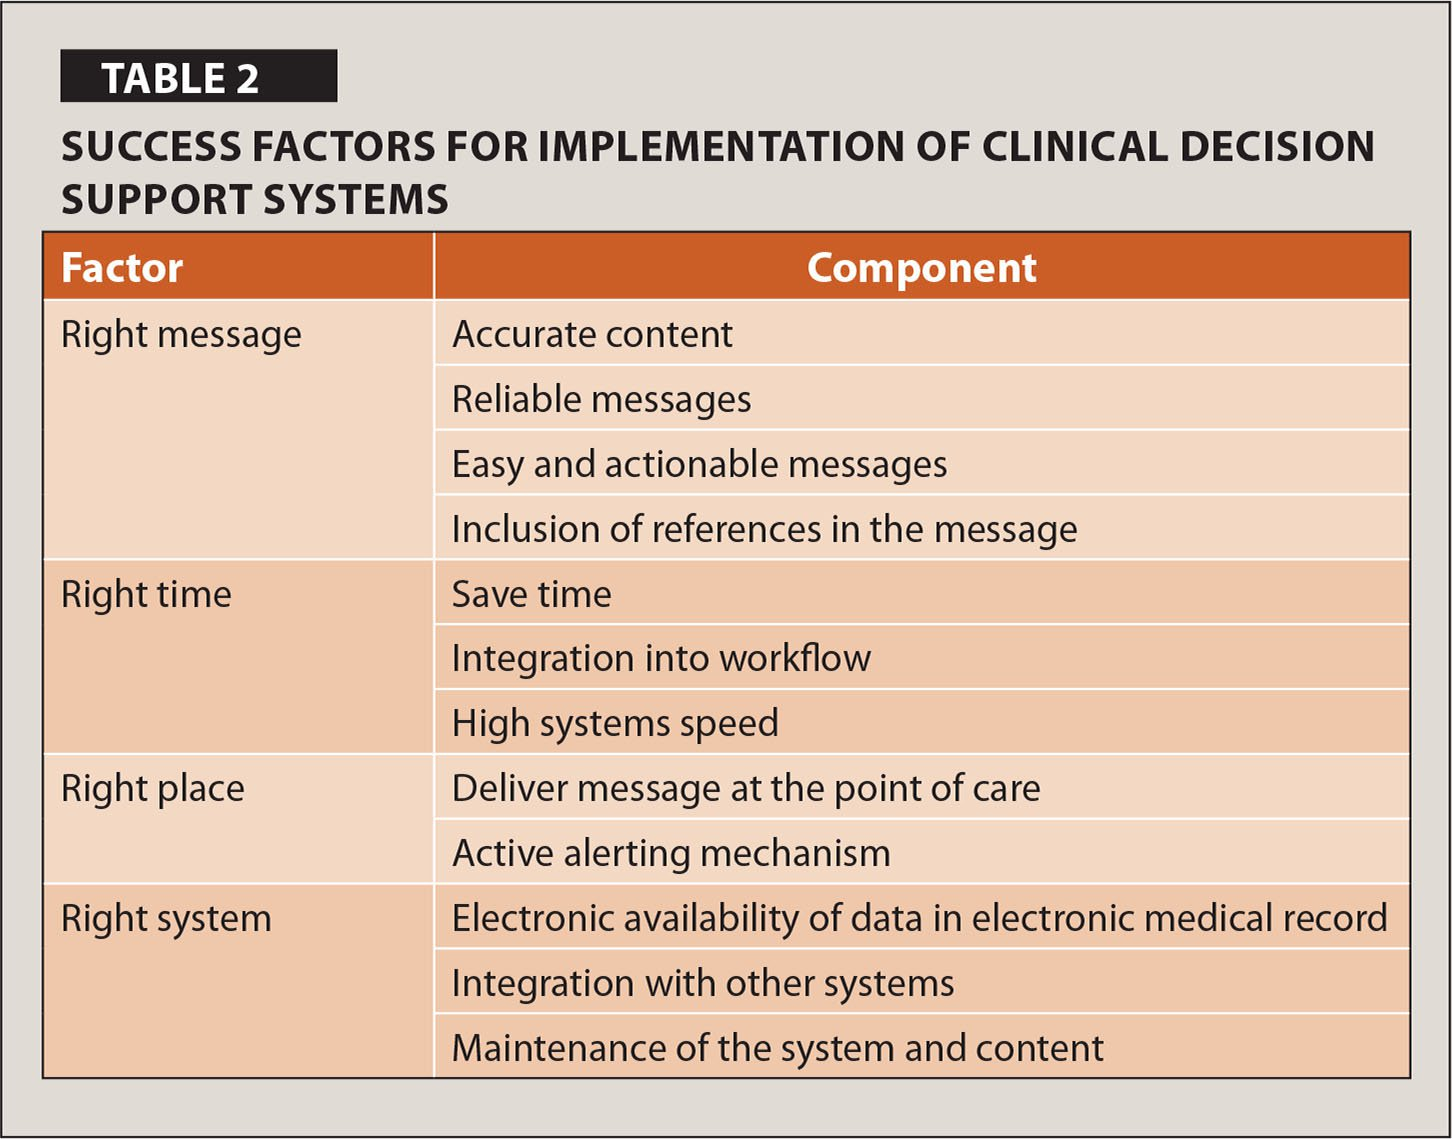 Success Factors for Implementation of Clinical Decision Support Systems